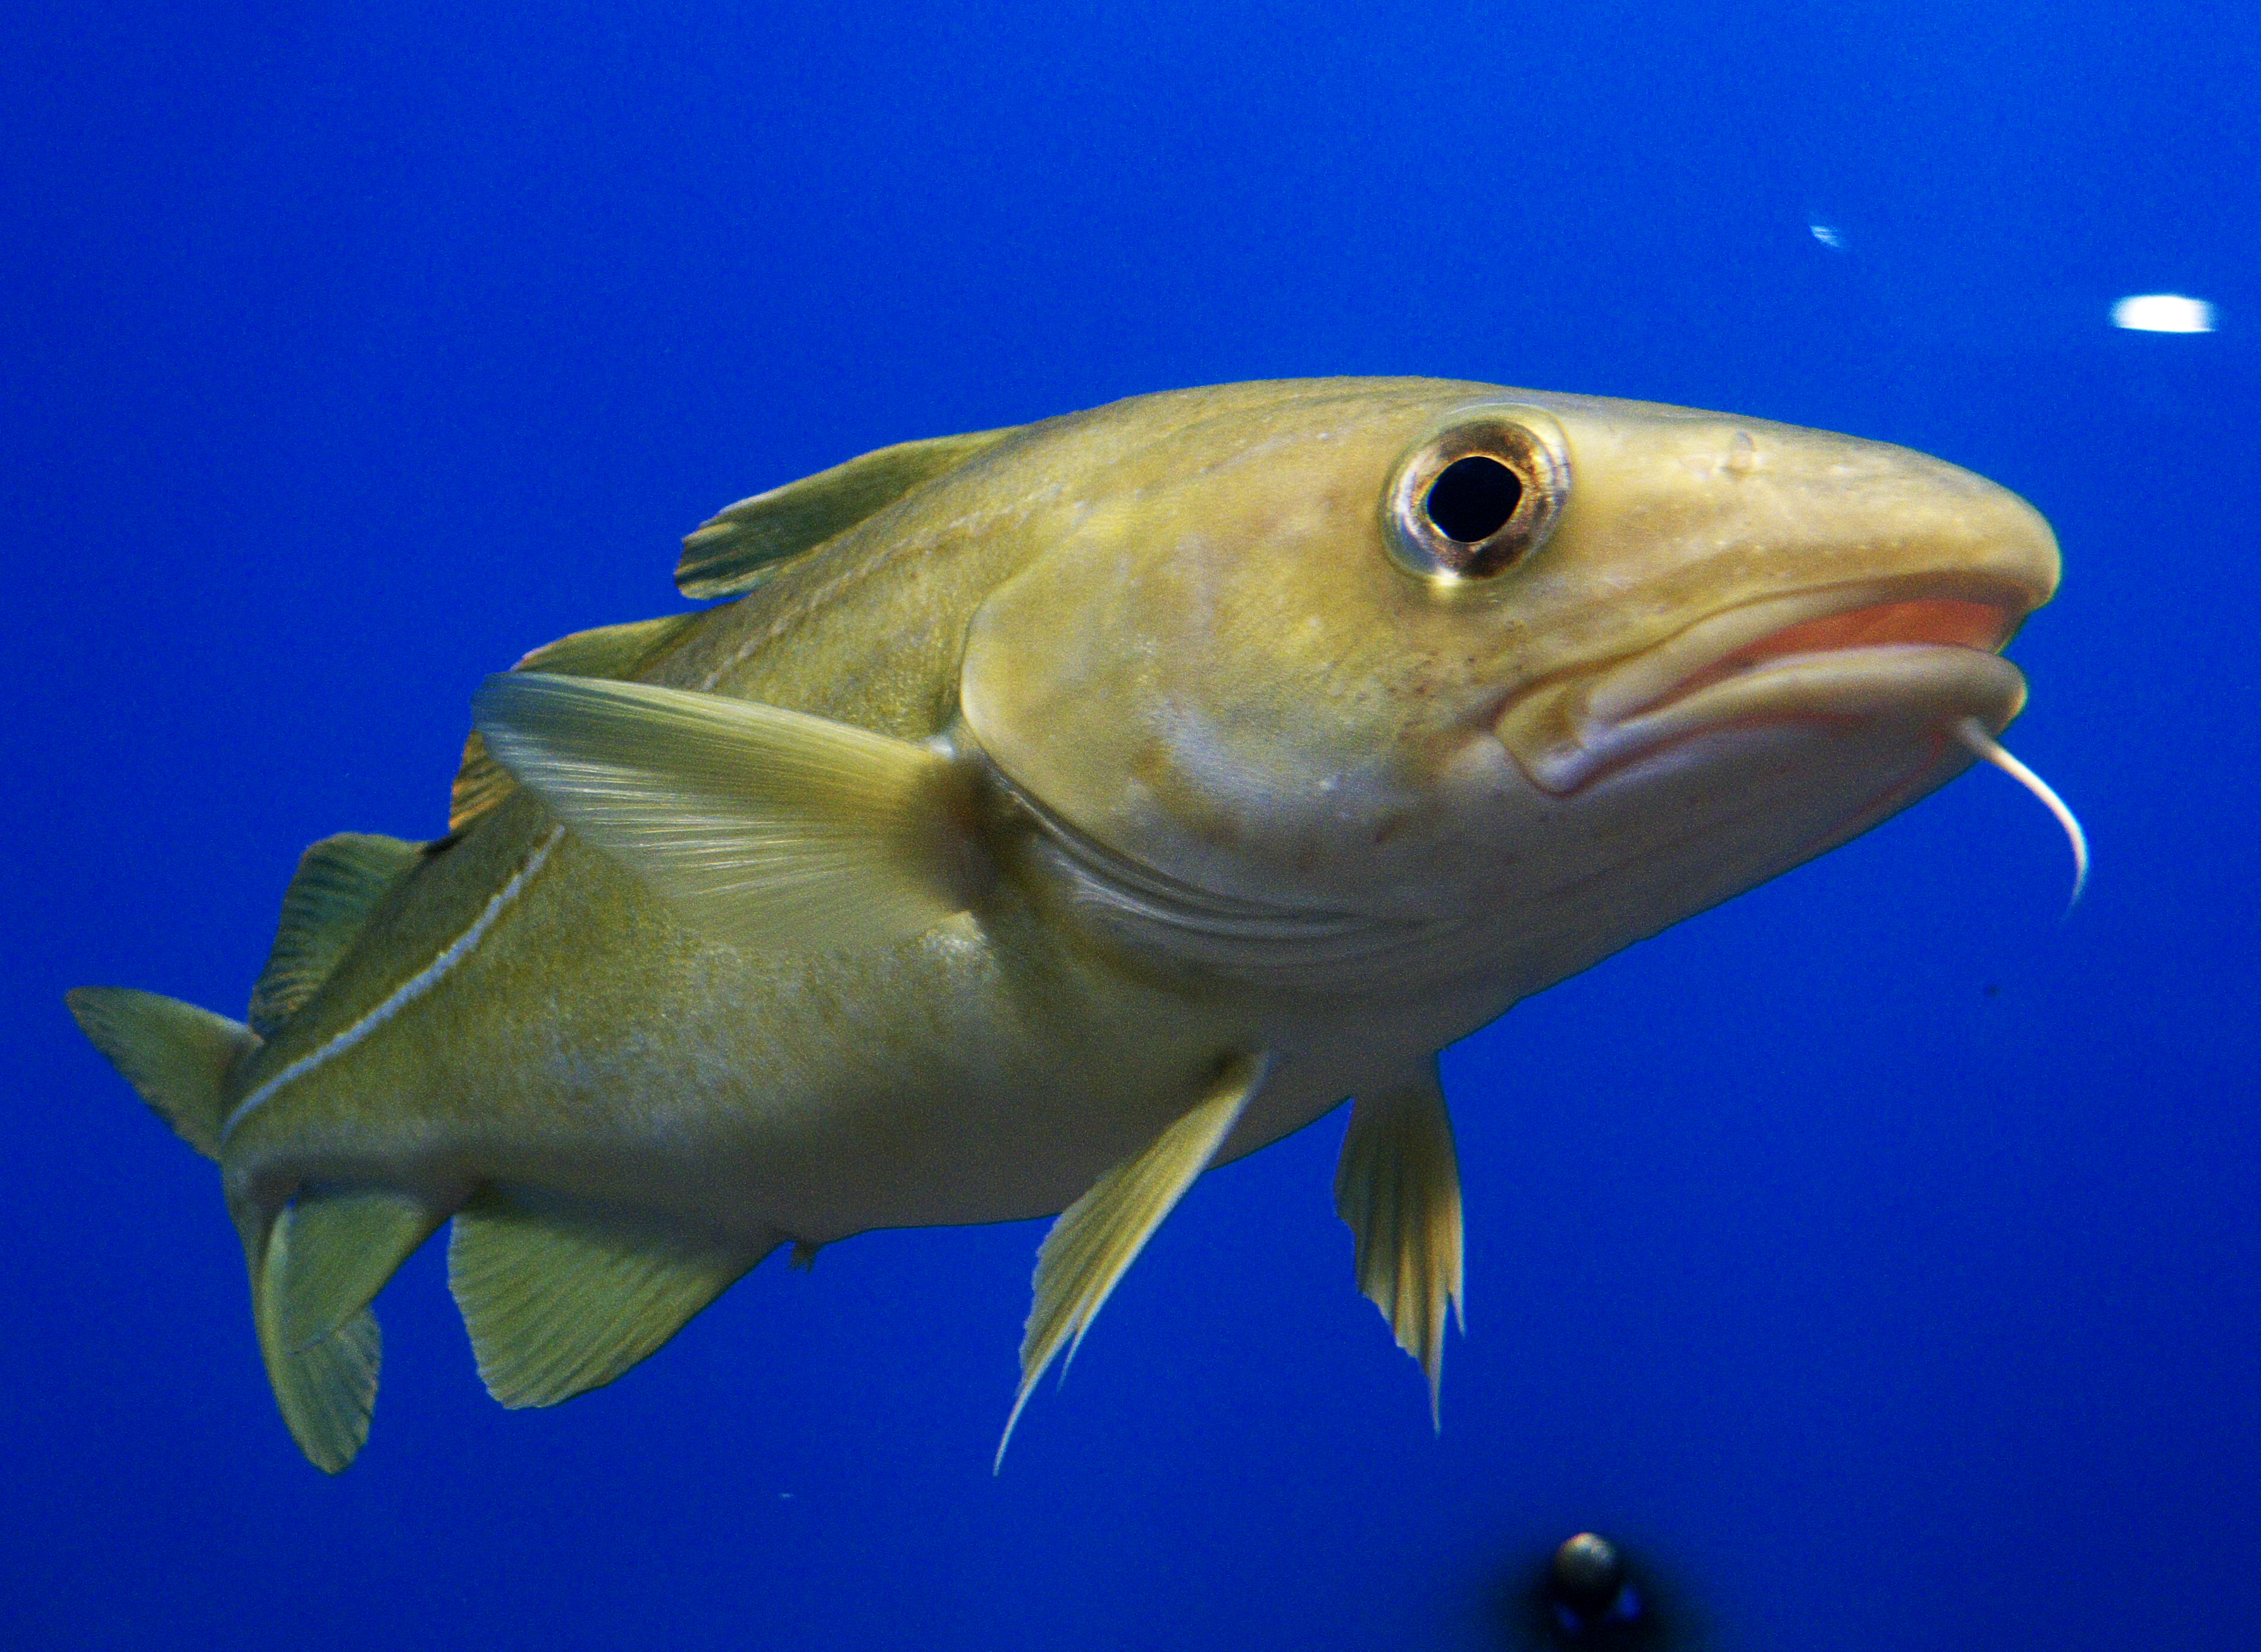 cod fish Cod are saltwater fish that live best in deep, arctic- temperature water in order to grow, reproduce, and survive it does not seem happenstance that.